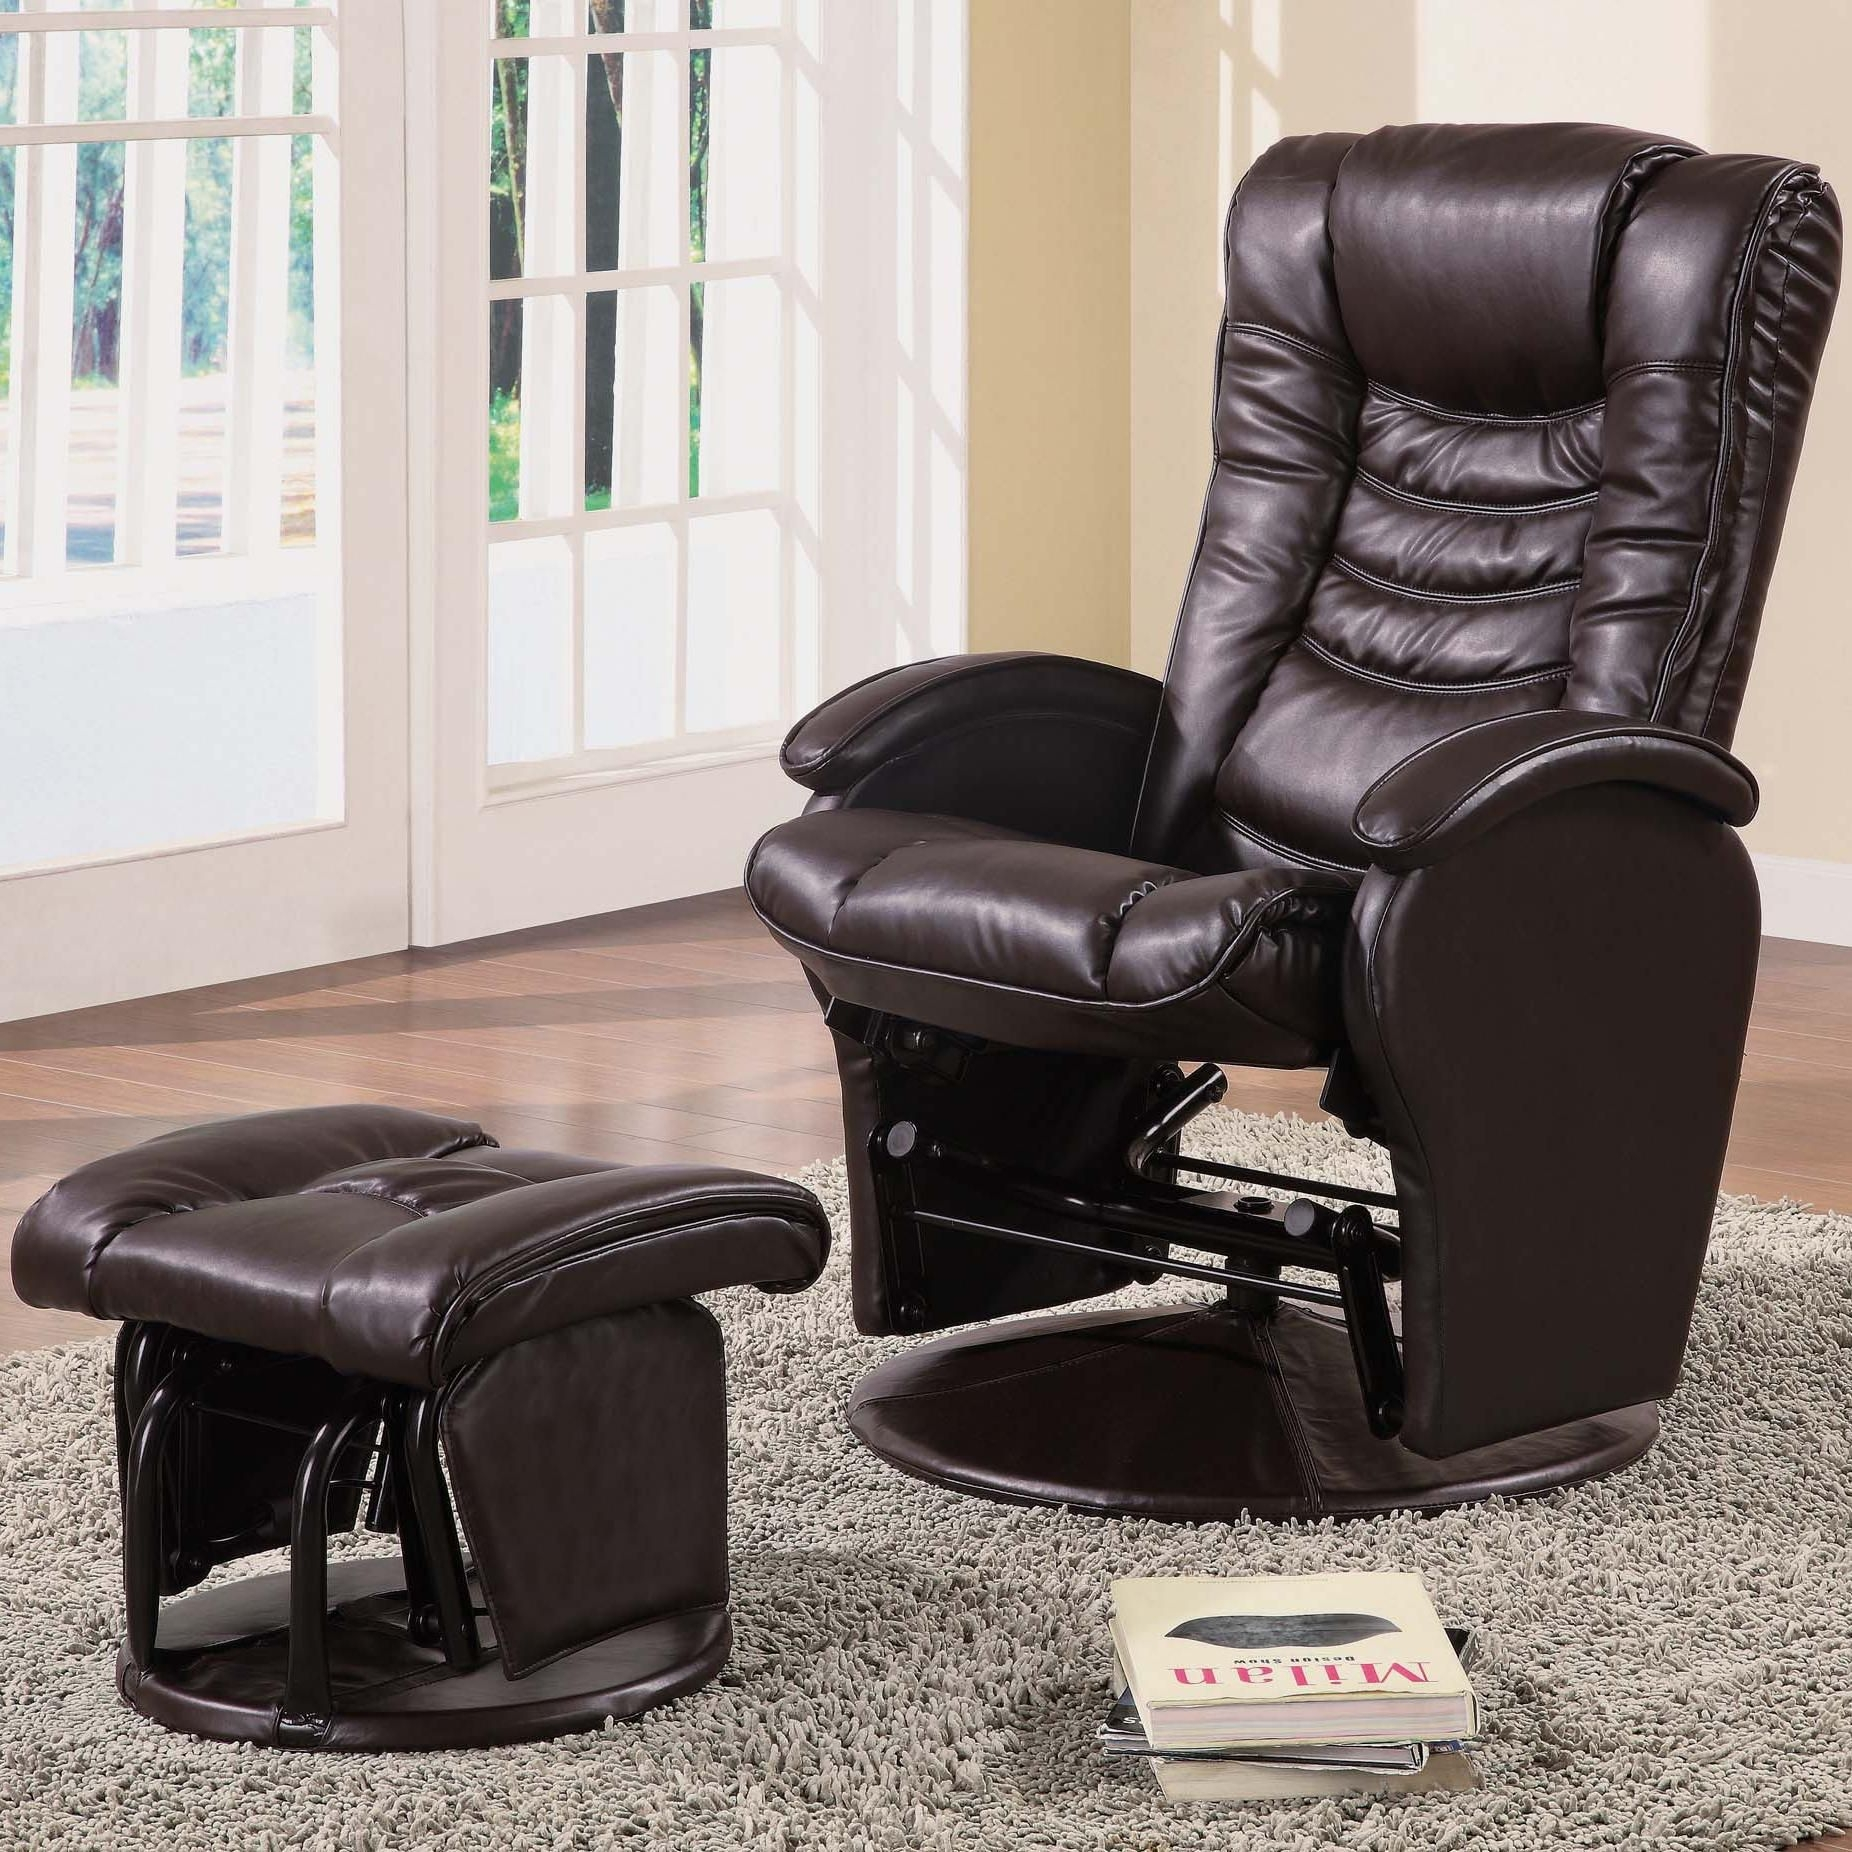 Swivel Glider Chair With Ottoman